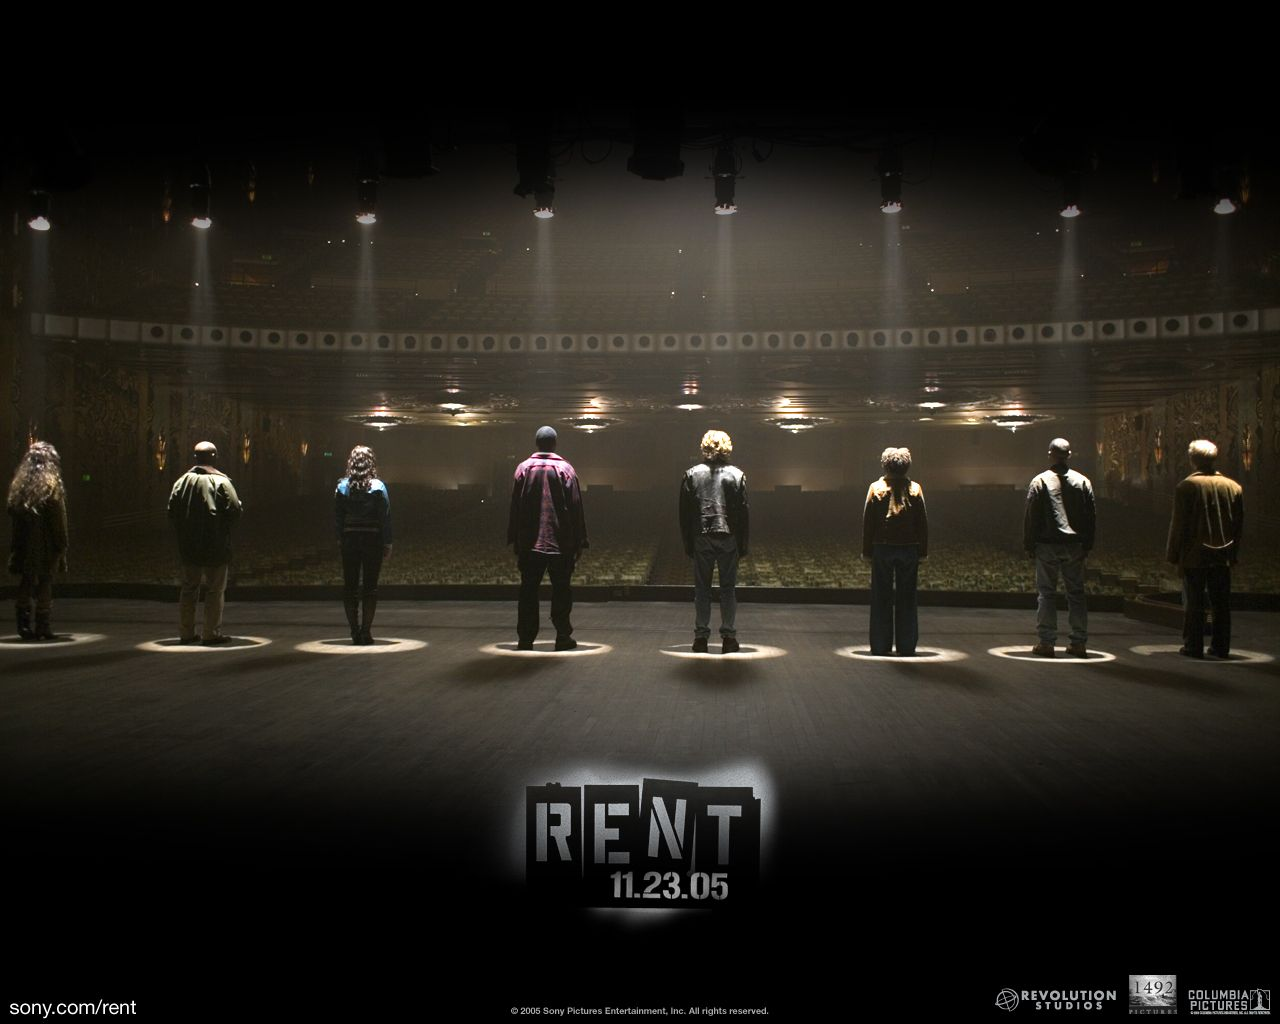 Rent Wallpaper With images Rent movies Rent musical Musical 1280x1024